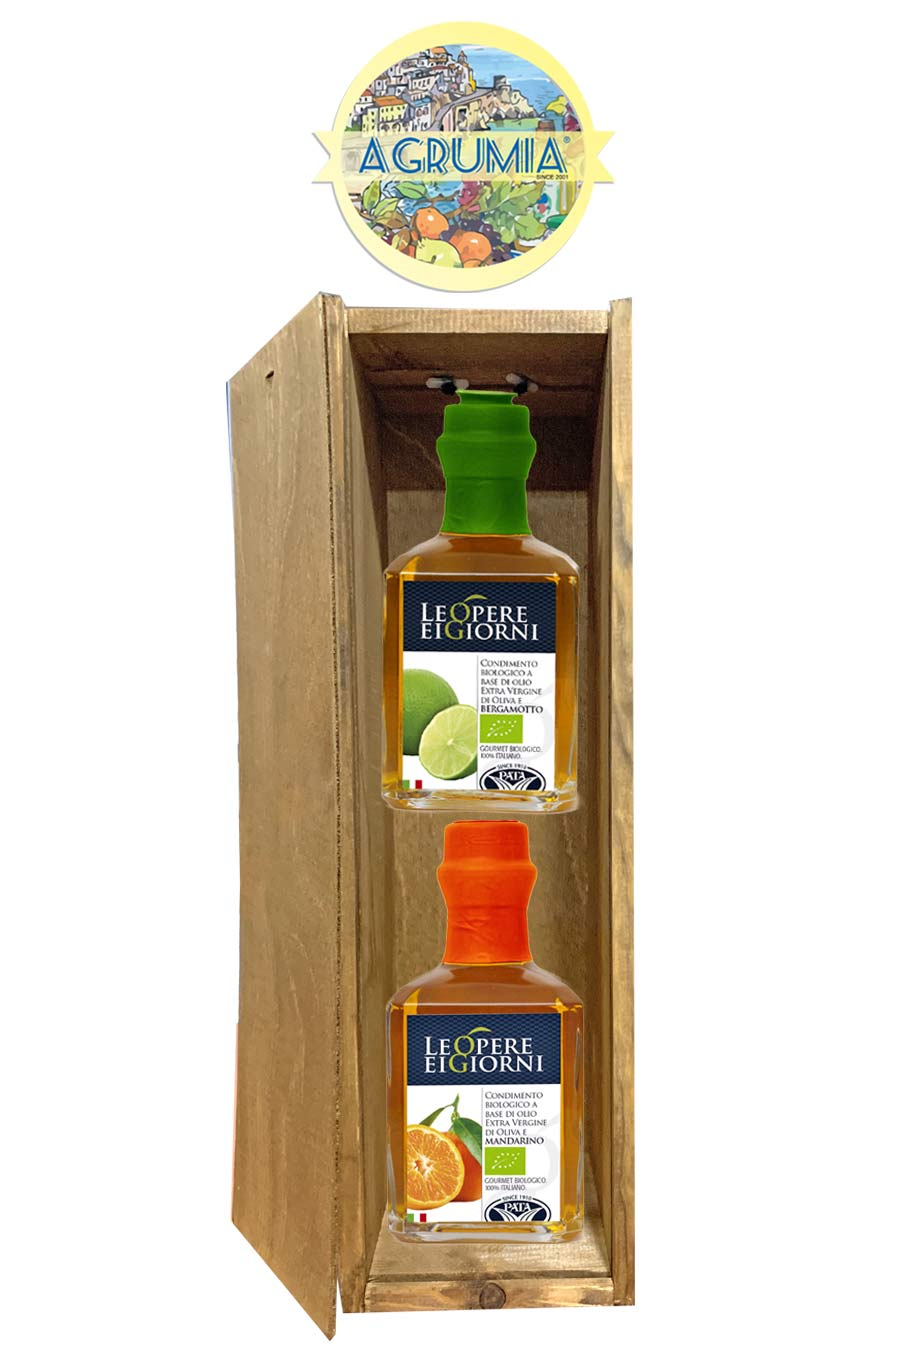 Agrumia Twin Infused Olive oil Gift Hamper